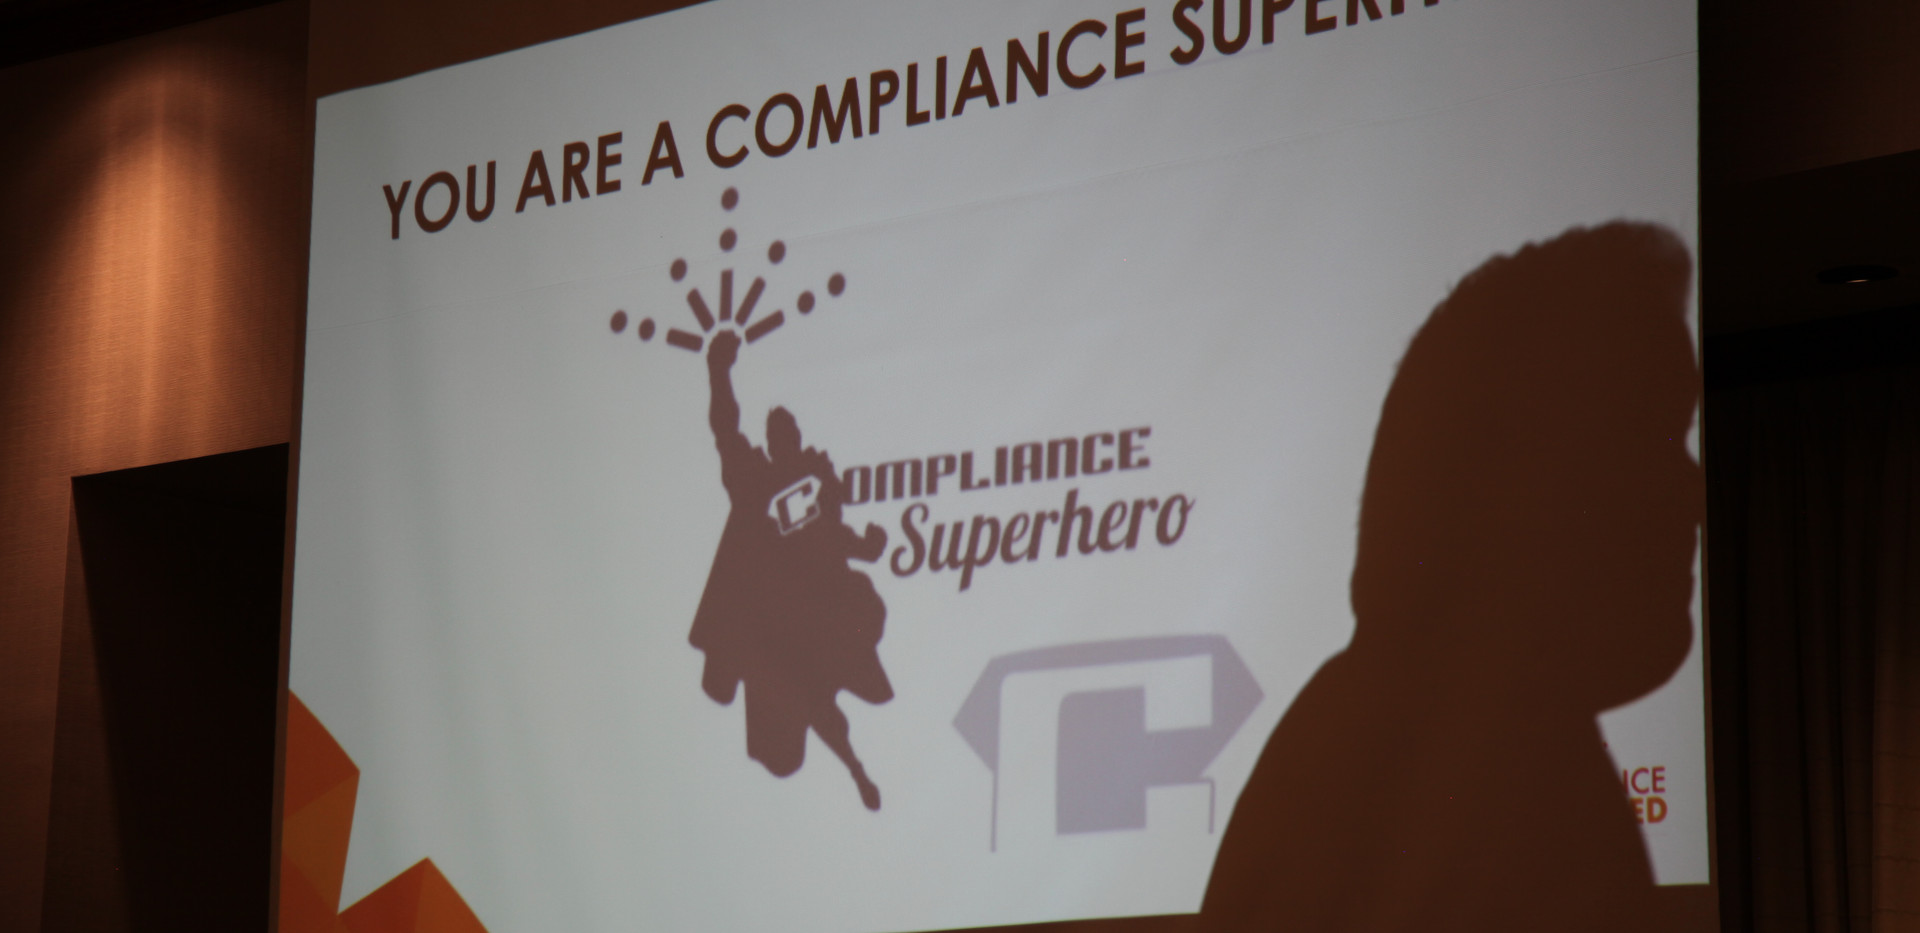 Compliance Superhero